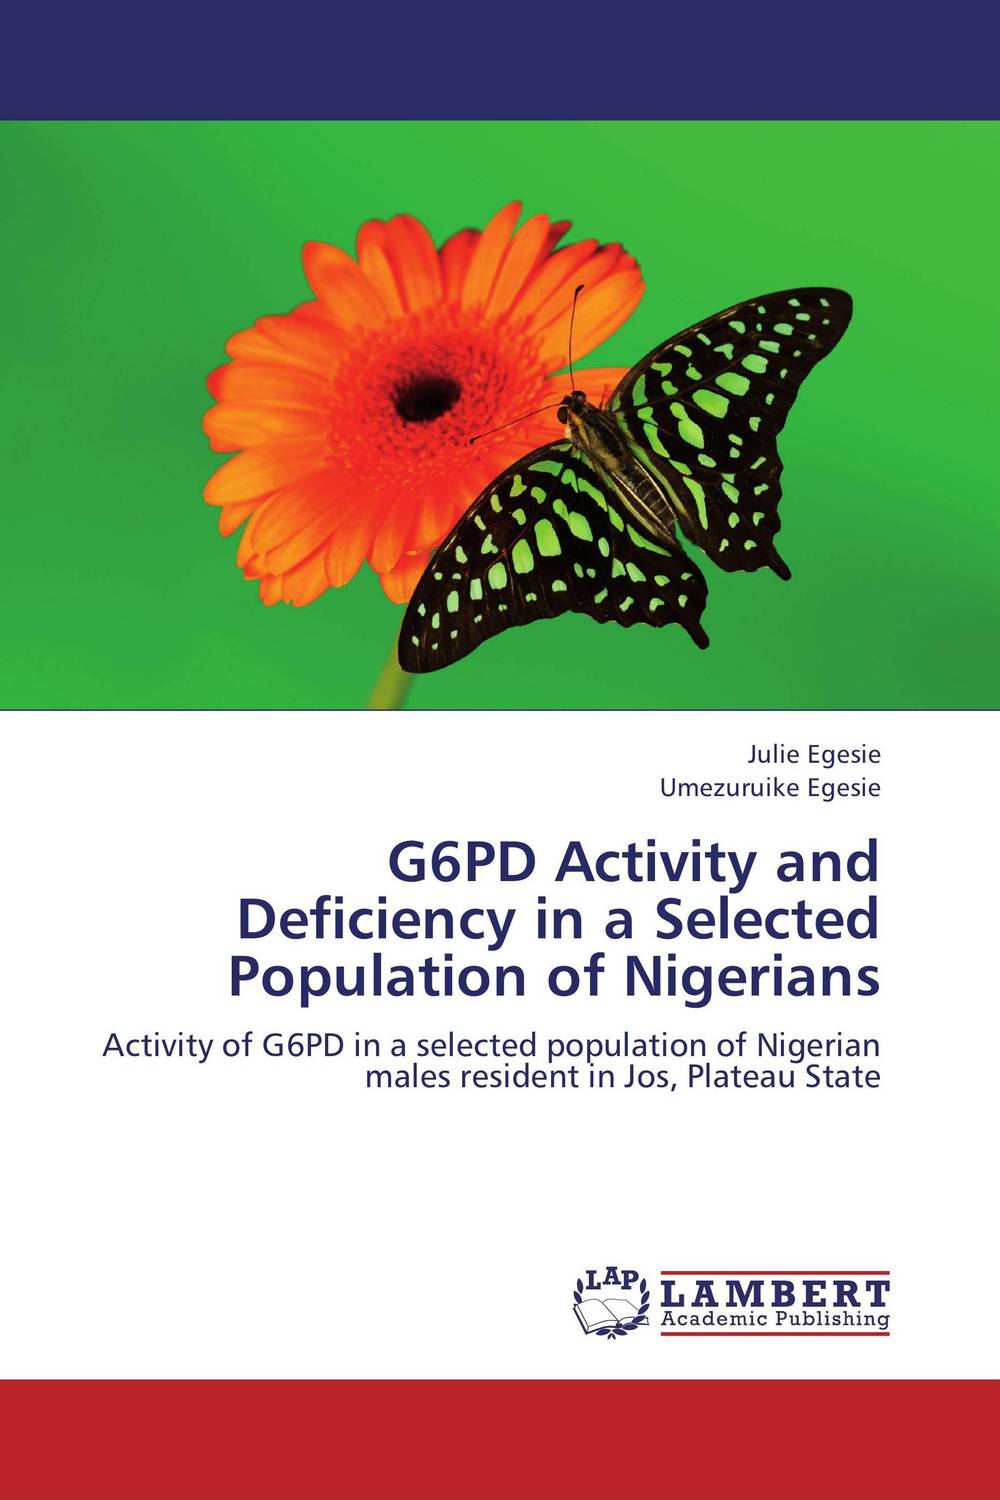 G6PD Activity and Deficiency in a Selected Population of Nigerians